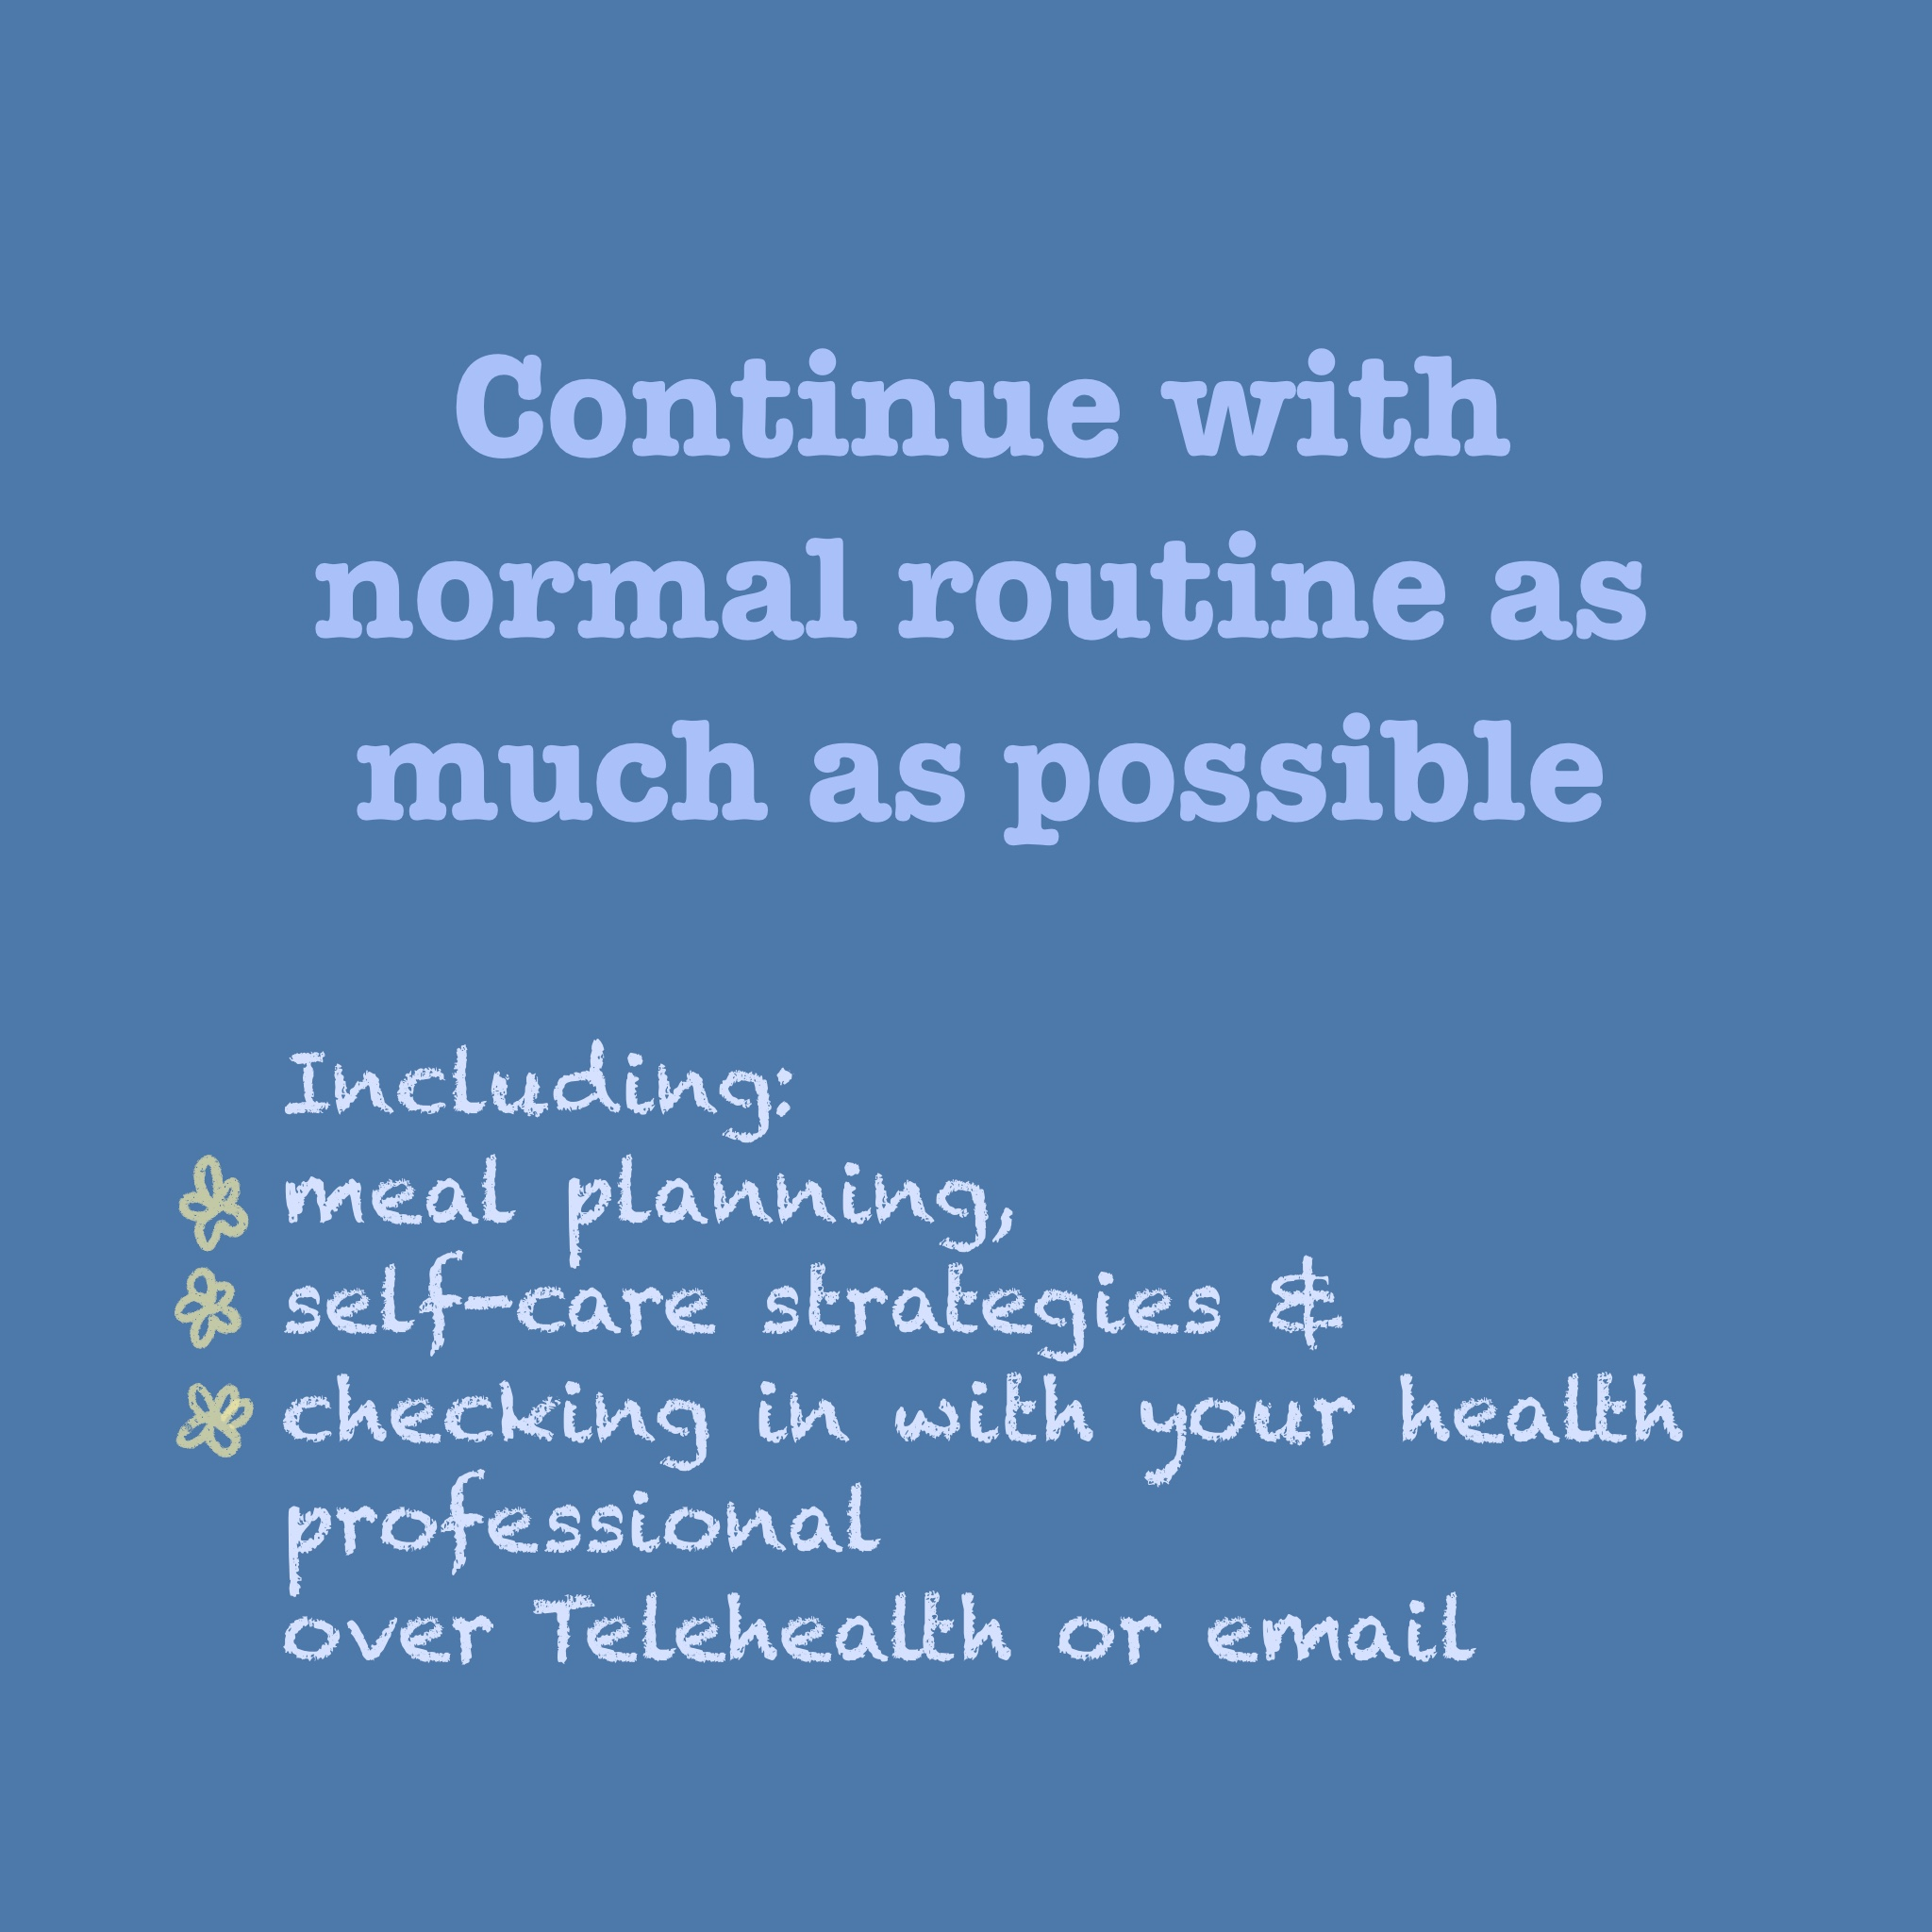 TEXT: Continue with normal routine as much as possible